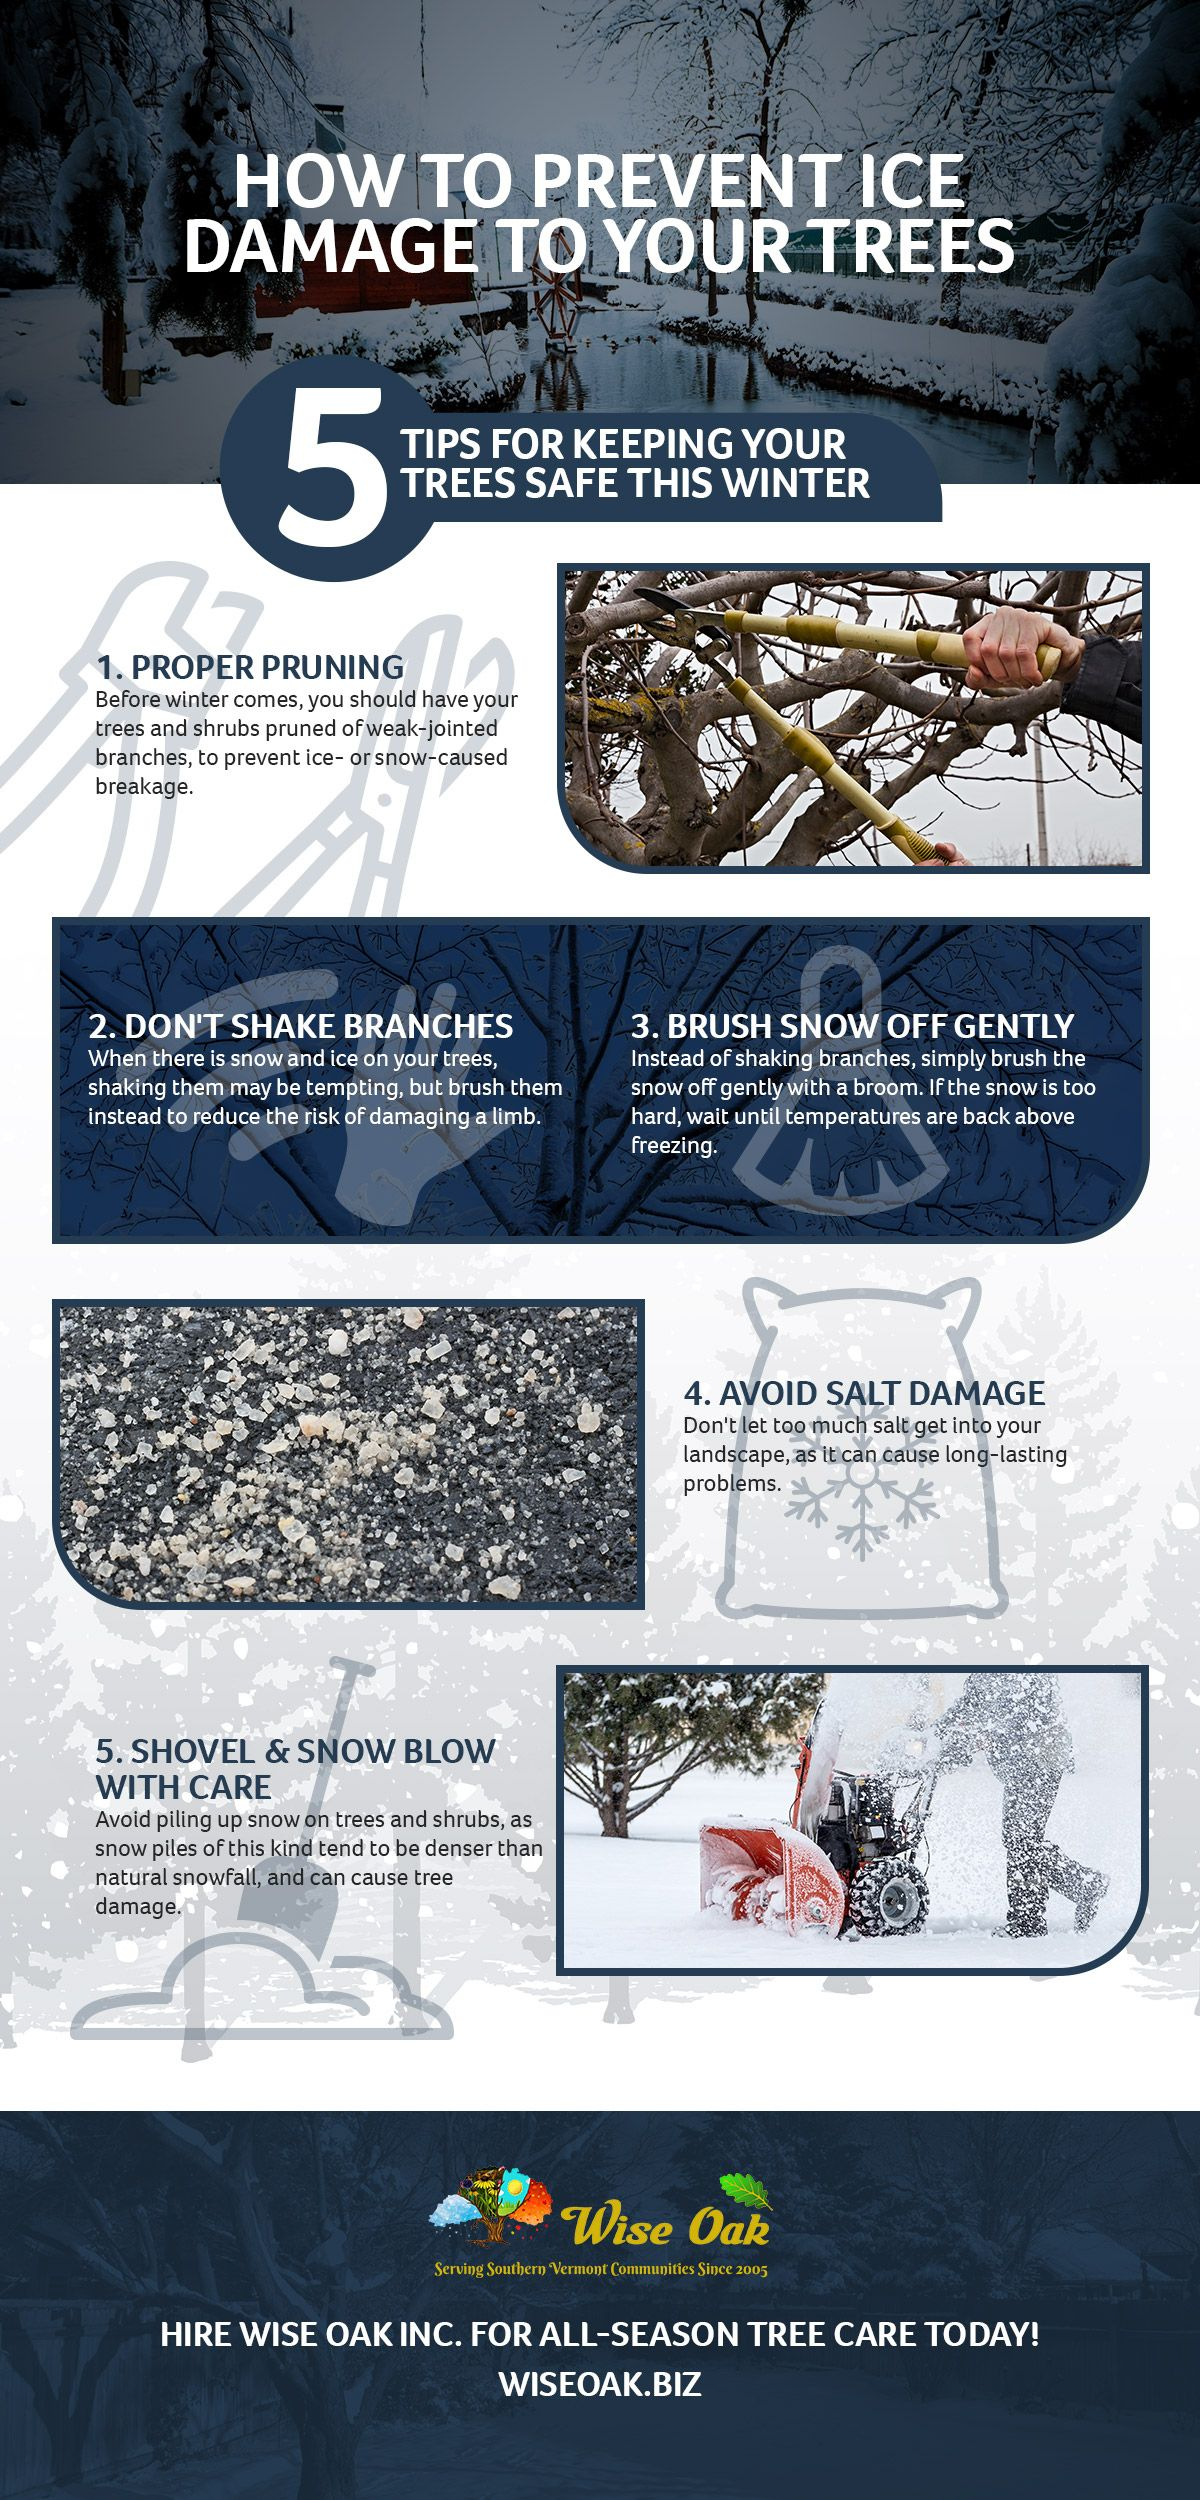 How to Prevent Ice Damage to Your Trees Infographic.jpg